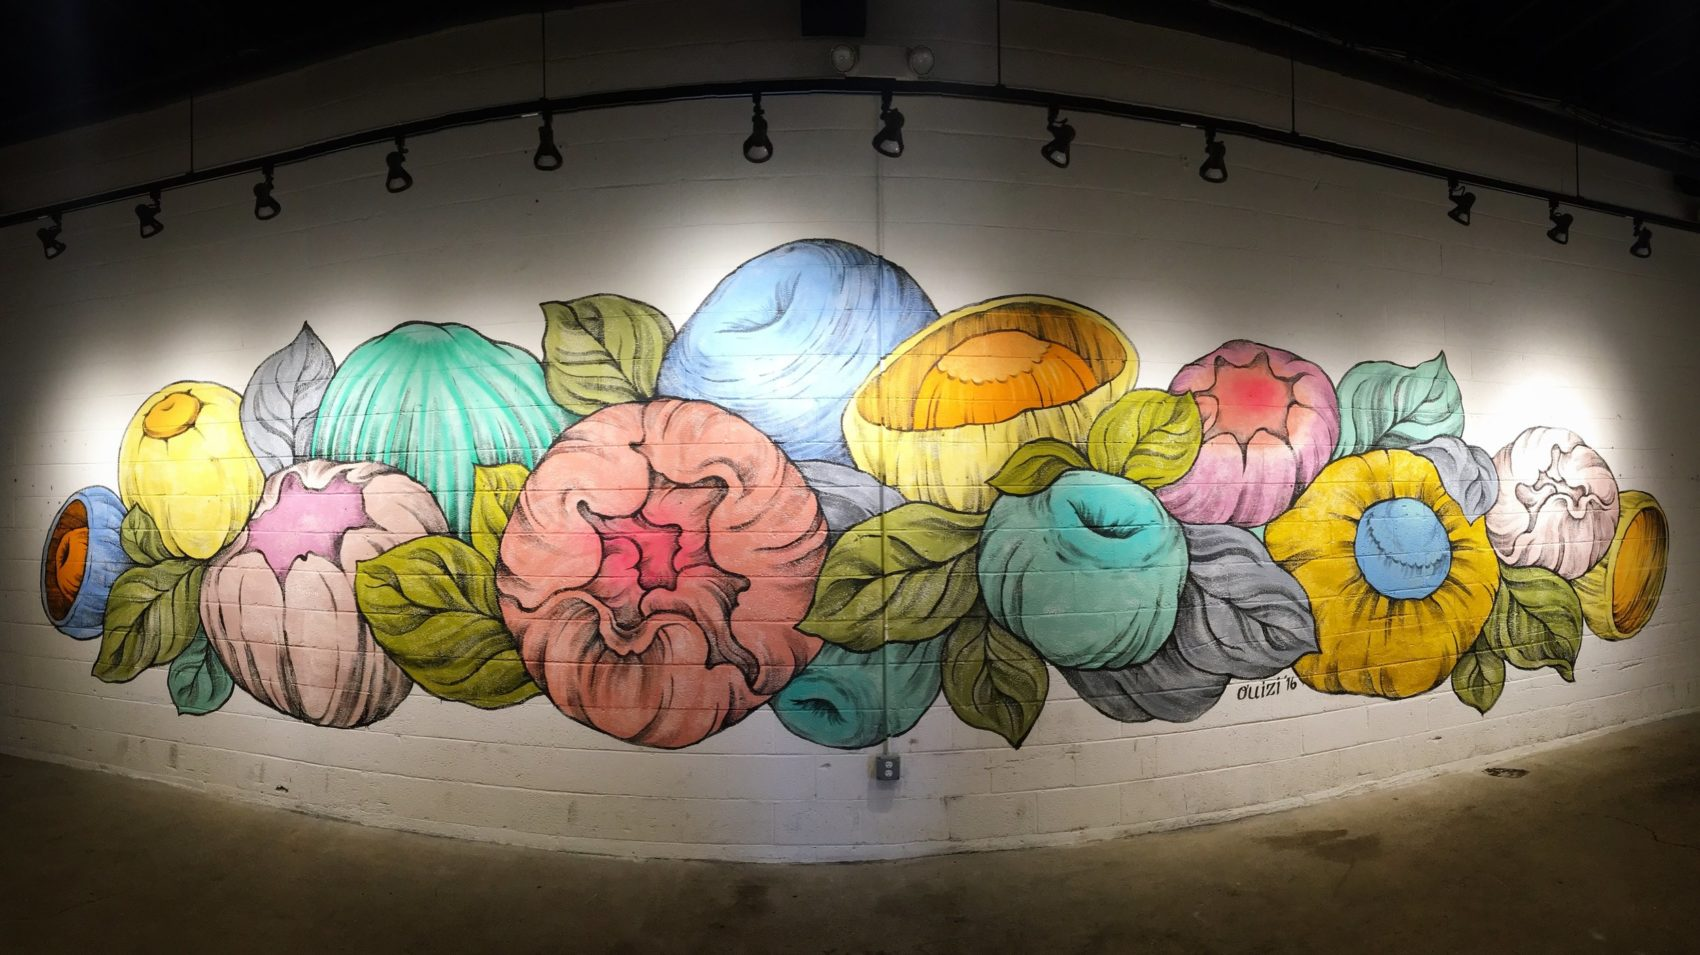 Stunning Huge Murals Floral by Ouizi 5 Stunning Huge Murals Floral by Ouizi